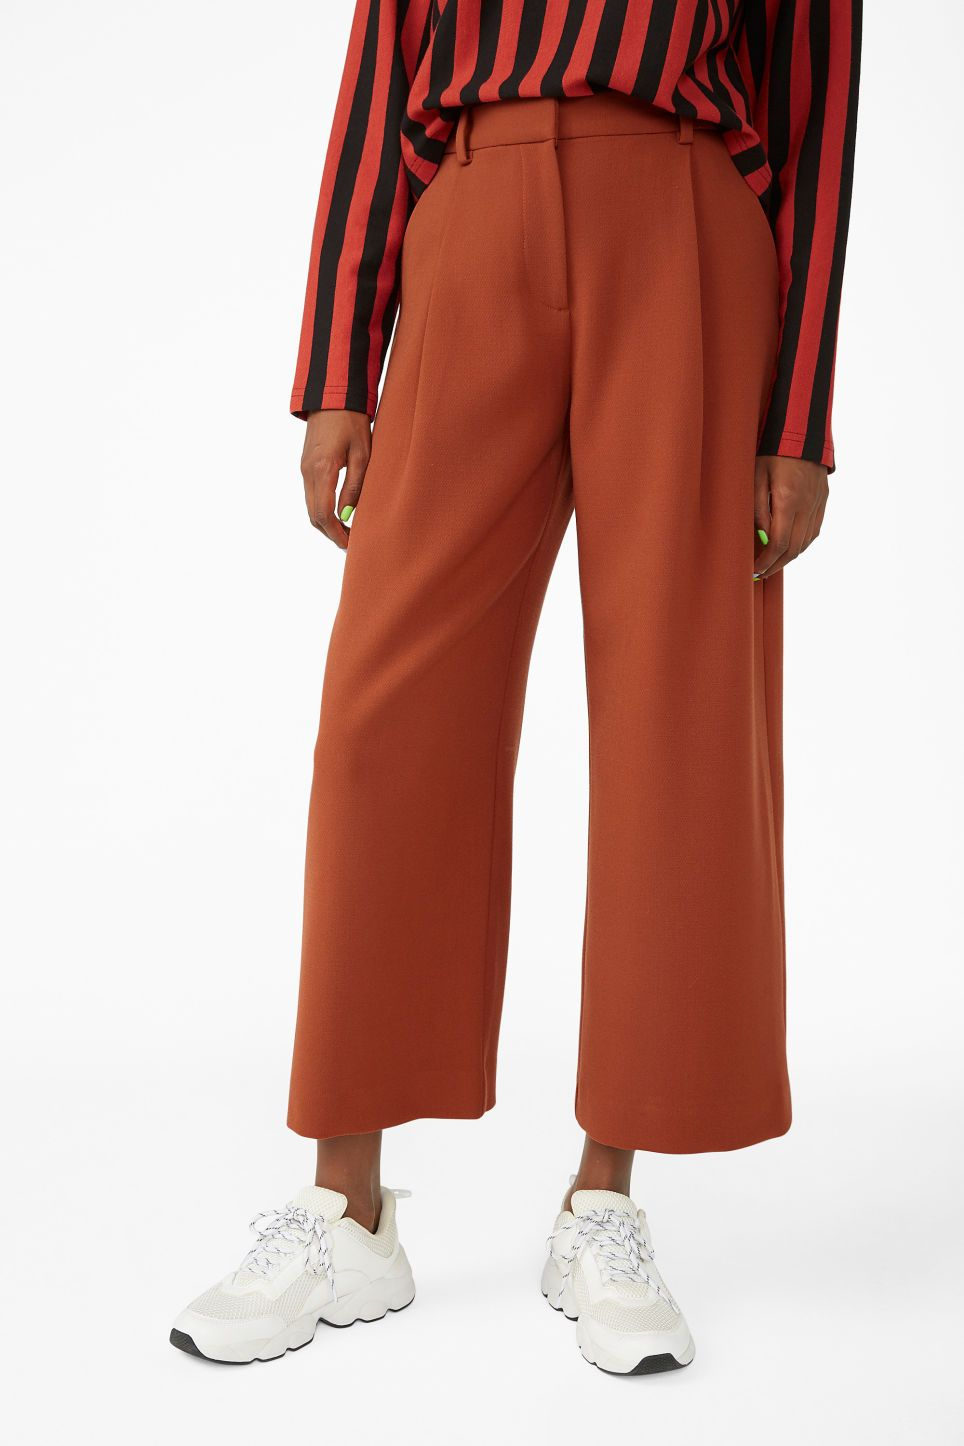 60adef7e8b54d9 Wide leg trousers - Rusty red - Trousers   shorts in 2019